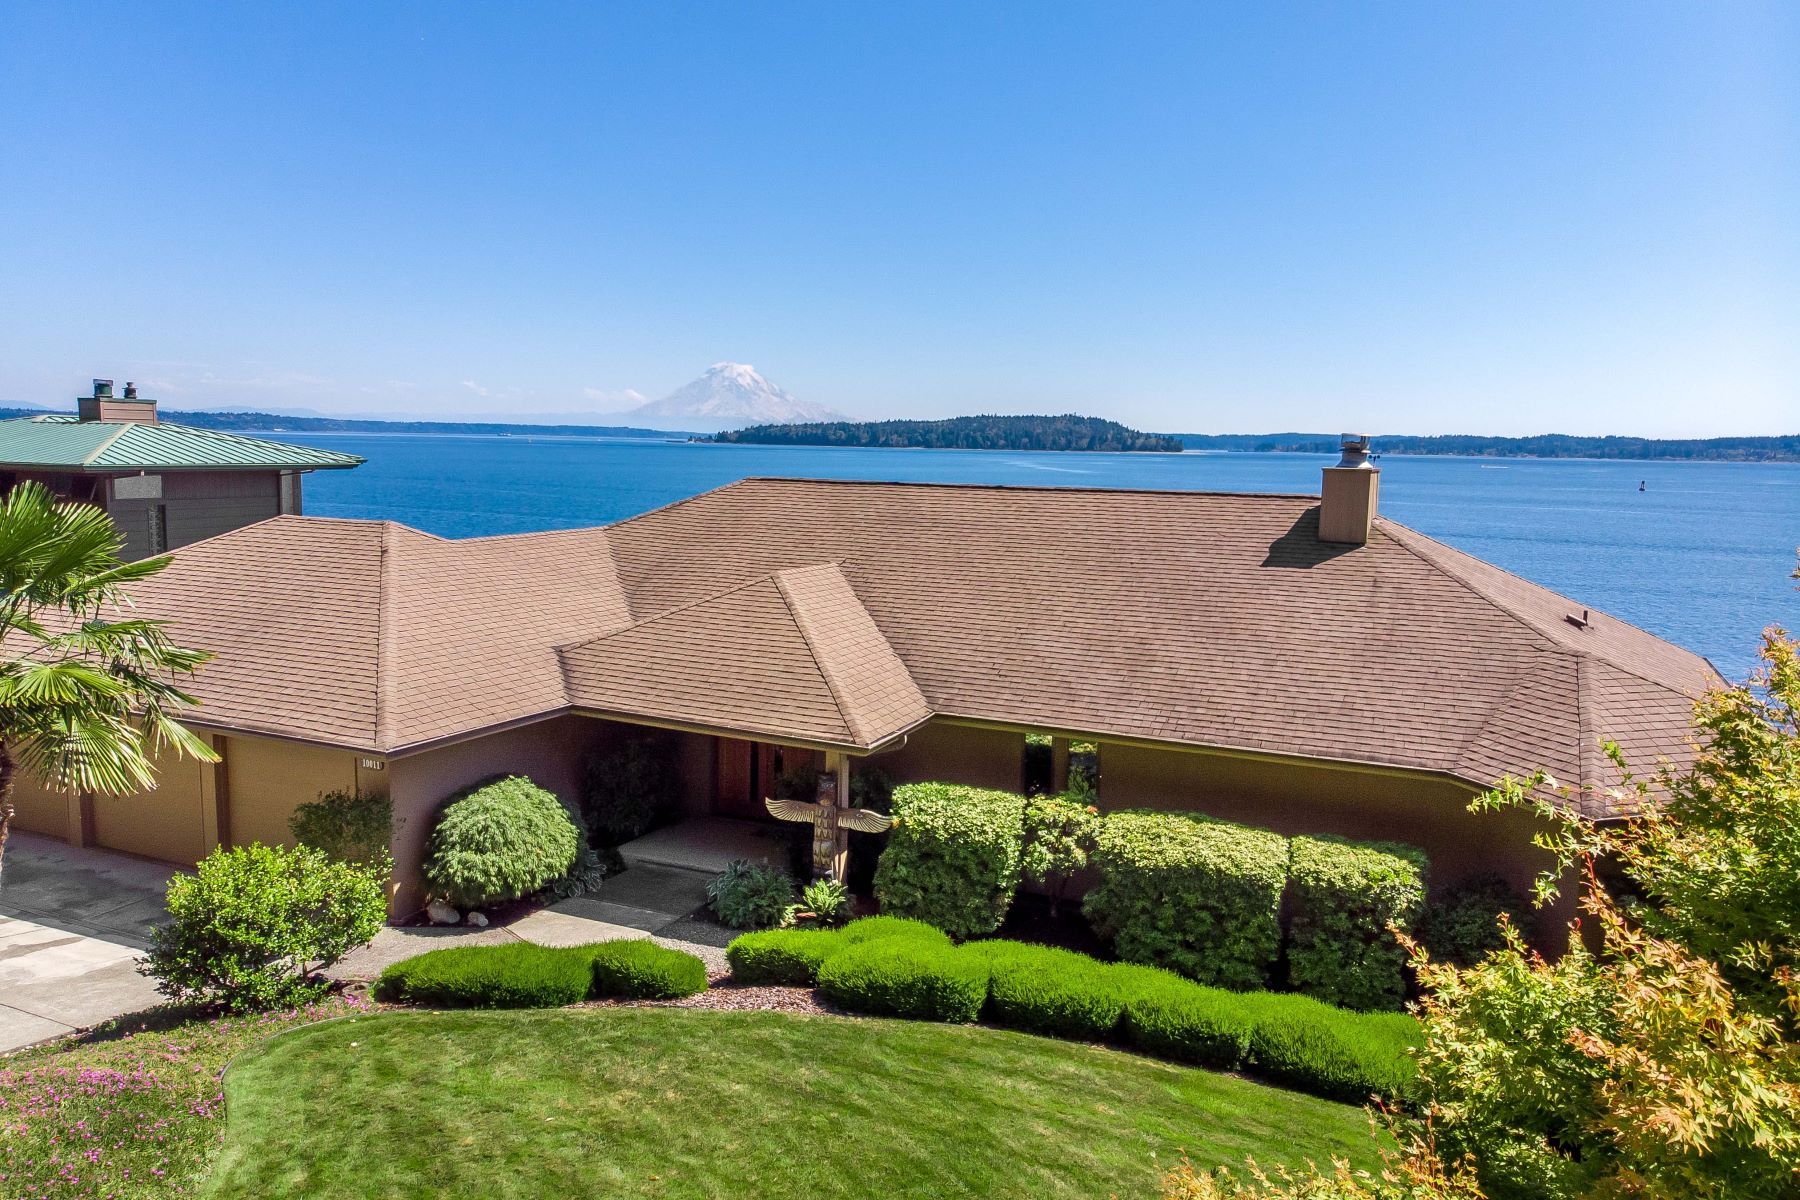 Single Family Homes for Sale at 10011 NE South Beach Drive, Bainbridge Island, WA 98110 10011 NE South Beach Drive Bainbridge Island, Washington 98110 United States